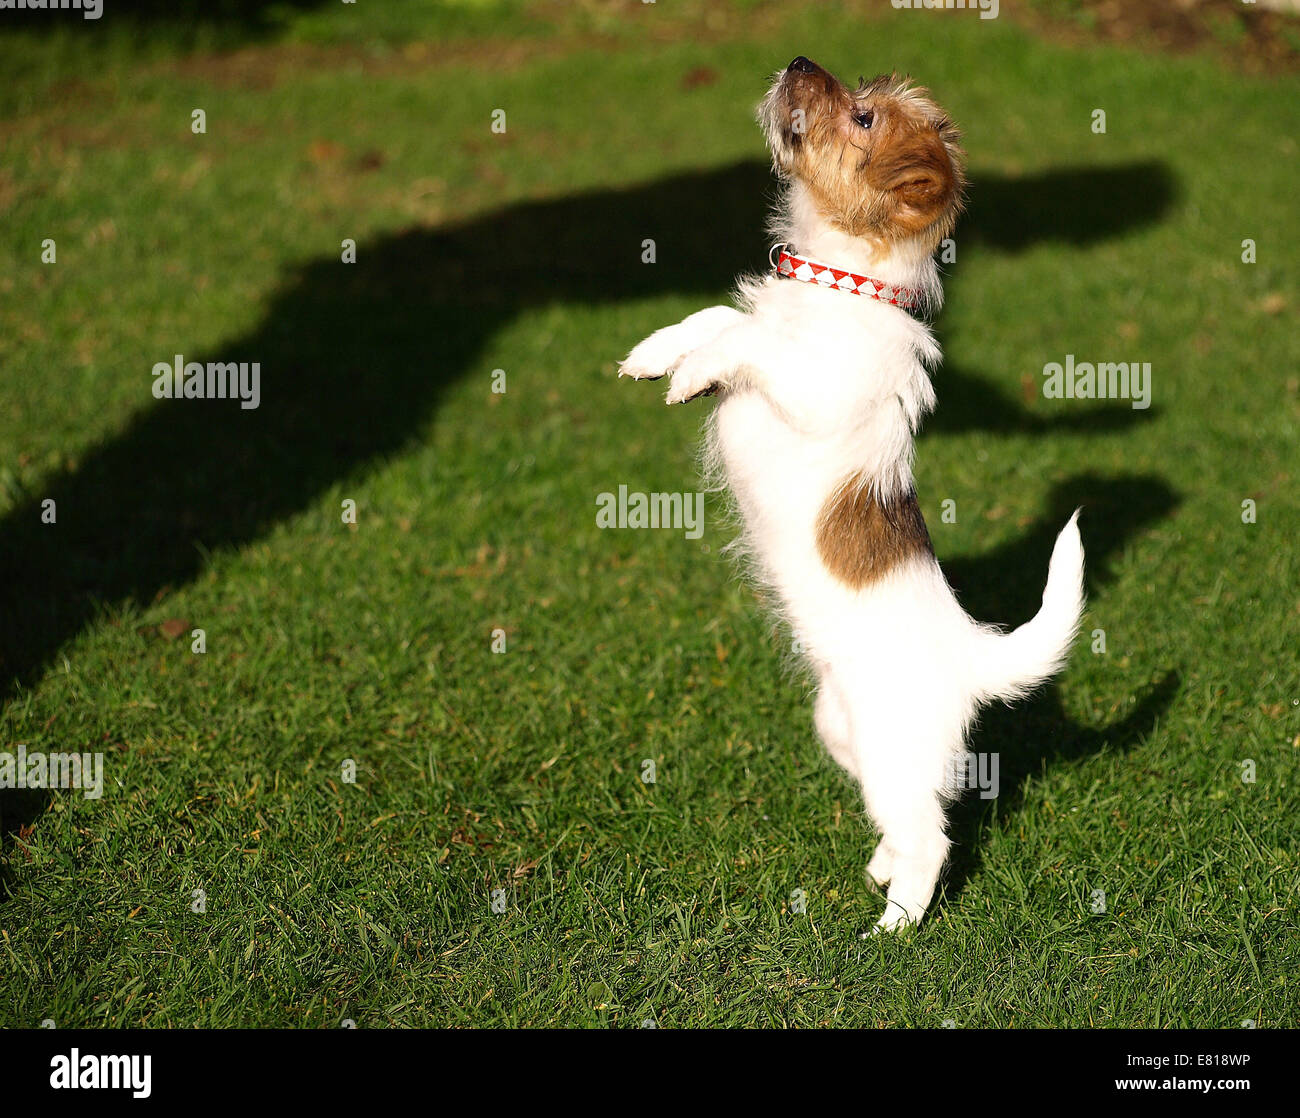 Yorkie Russell Puppy Stock Photo 73787666 Alamy